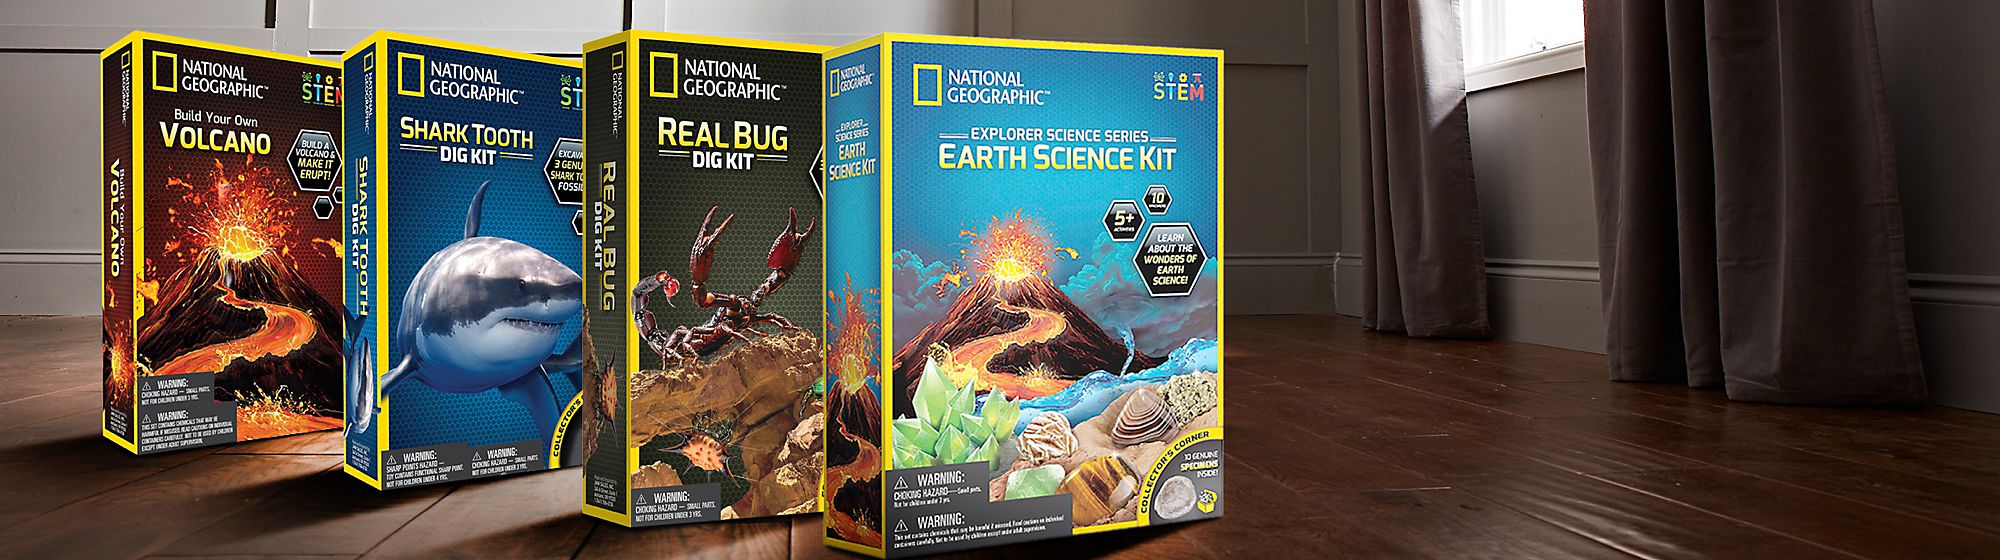 National Geographic Bring the wonders of the world into your everyday life through products that inspire and empower exploration.